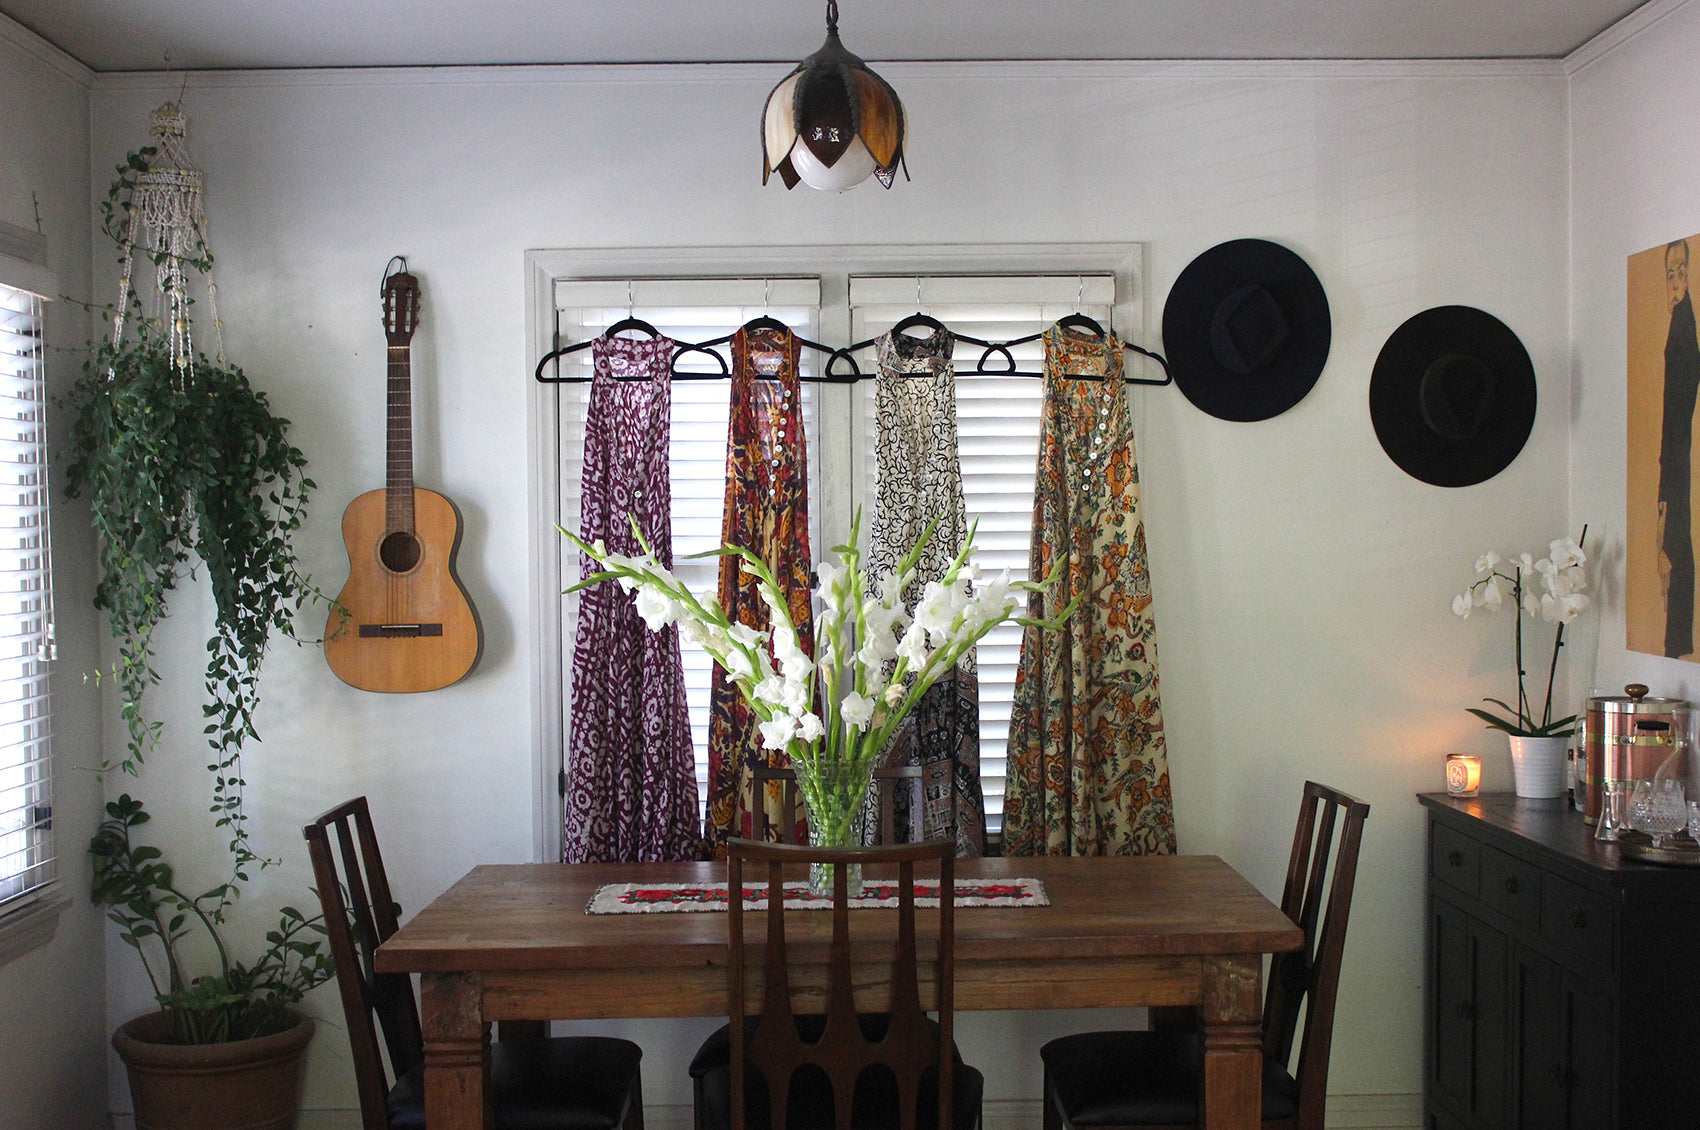 Four of Roxana's dresses hanging in front of a window surrounded by hanging guitars and hats.